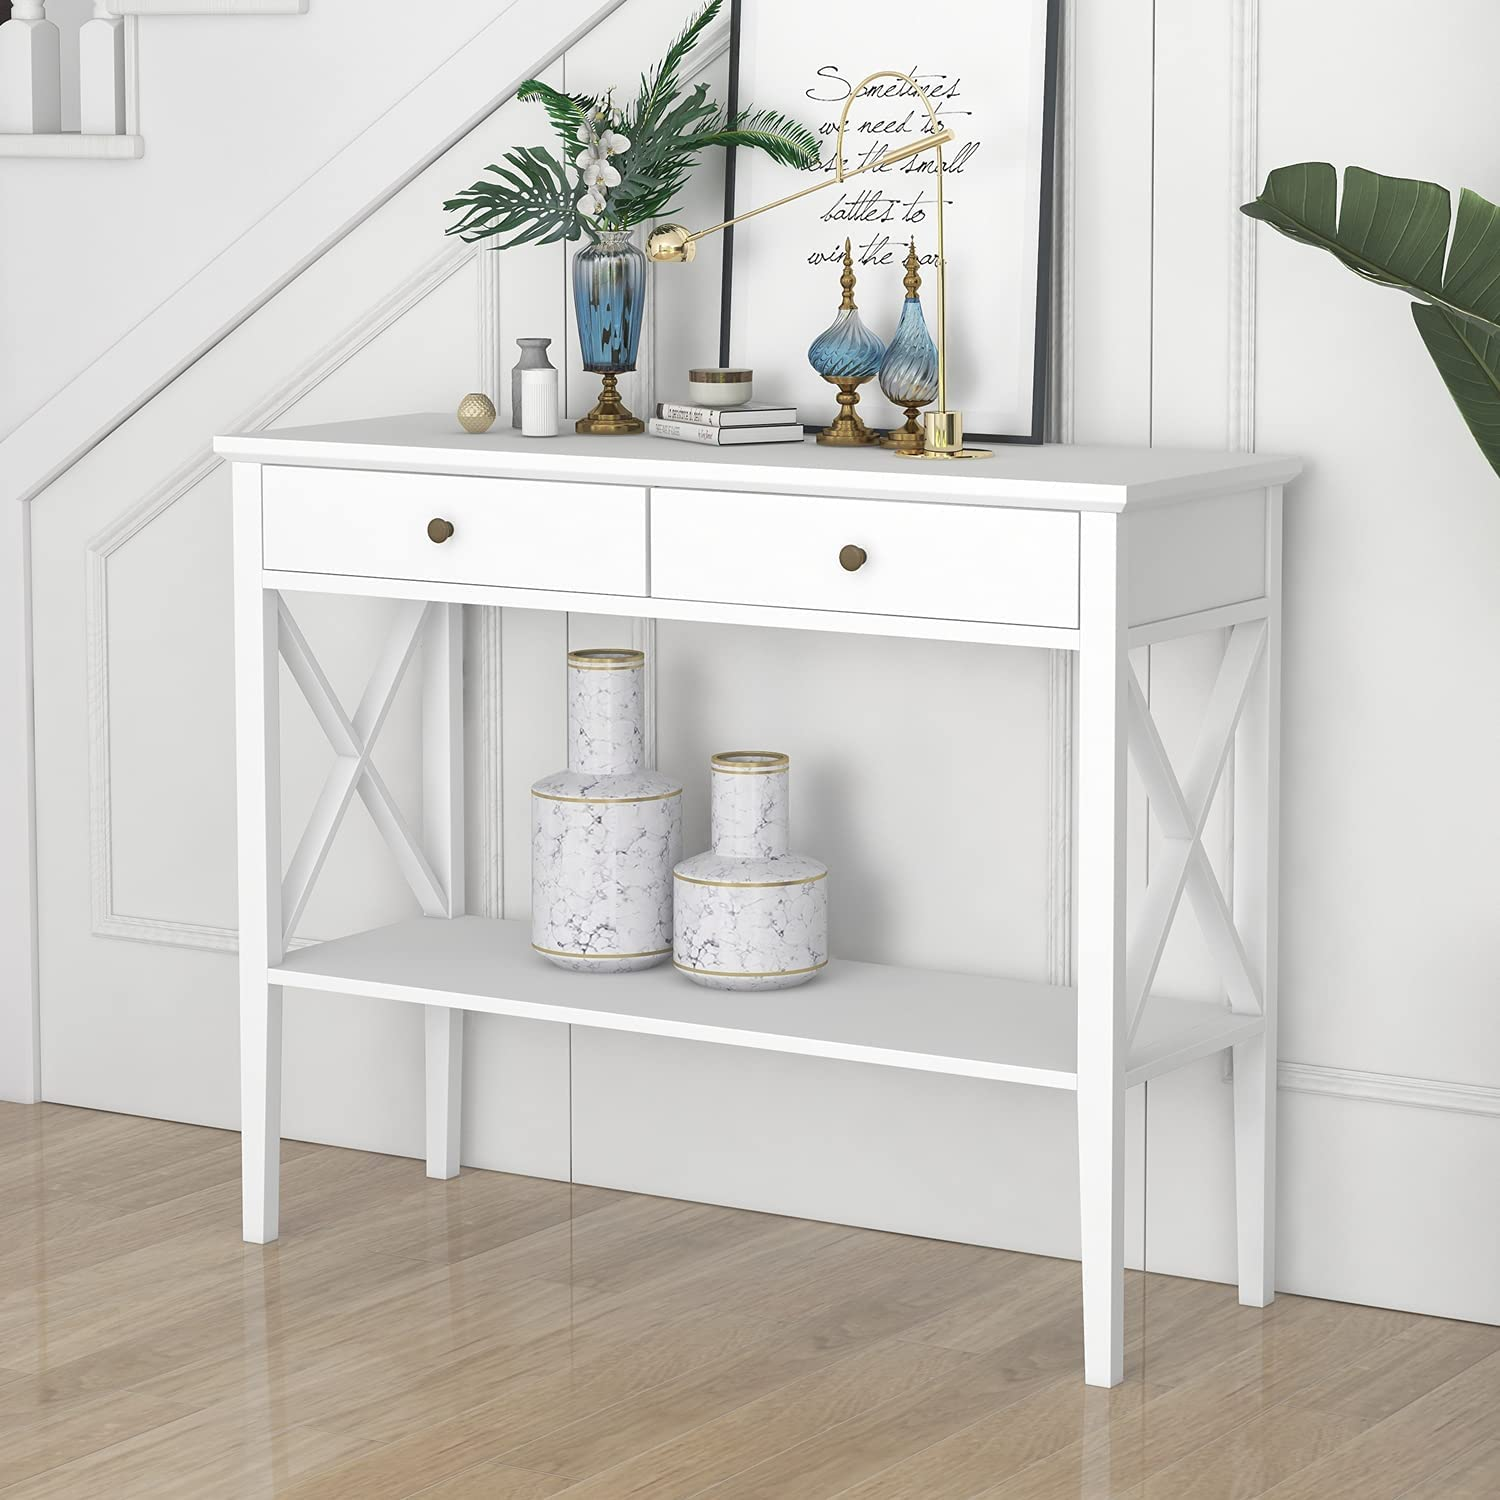 Max 200 OFF ChooChoo Oxford Console Table with Drawers 20 Sofa Narrow